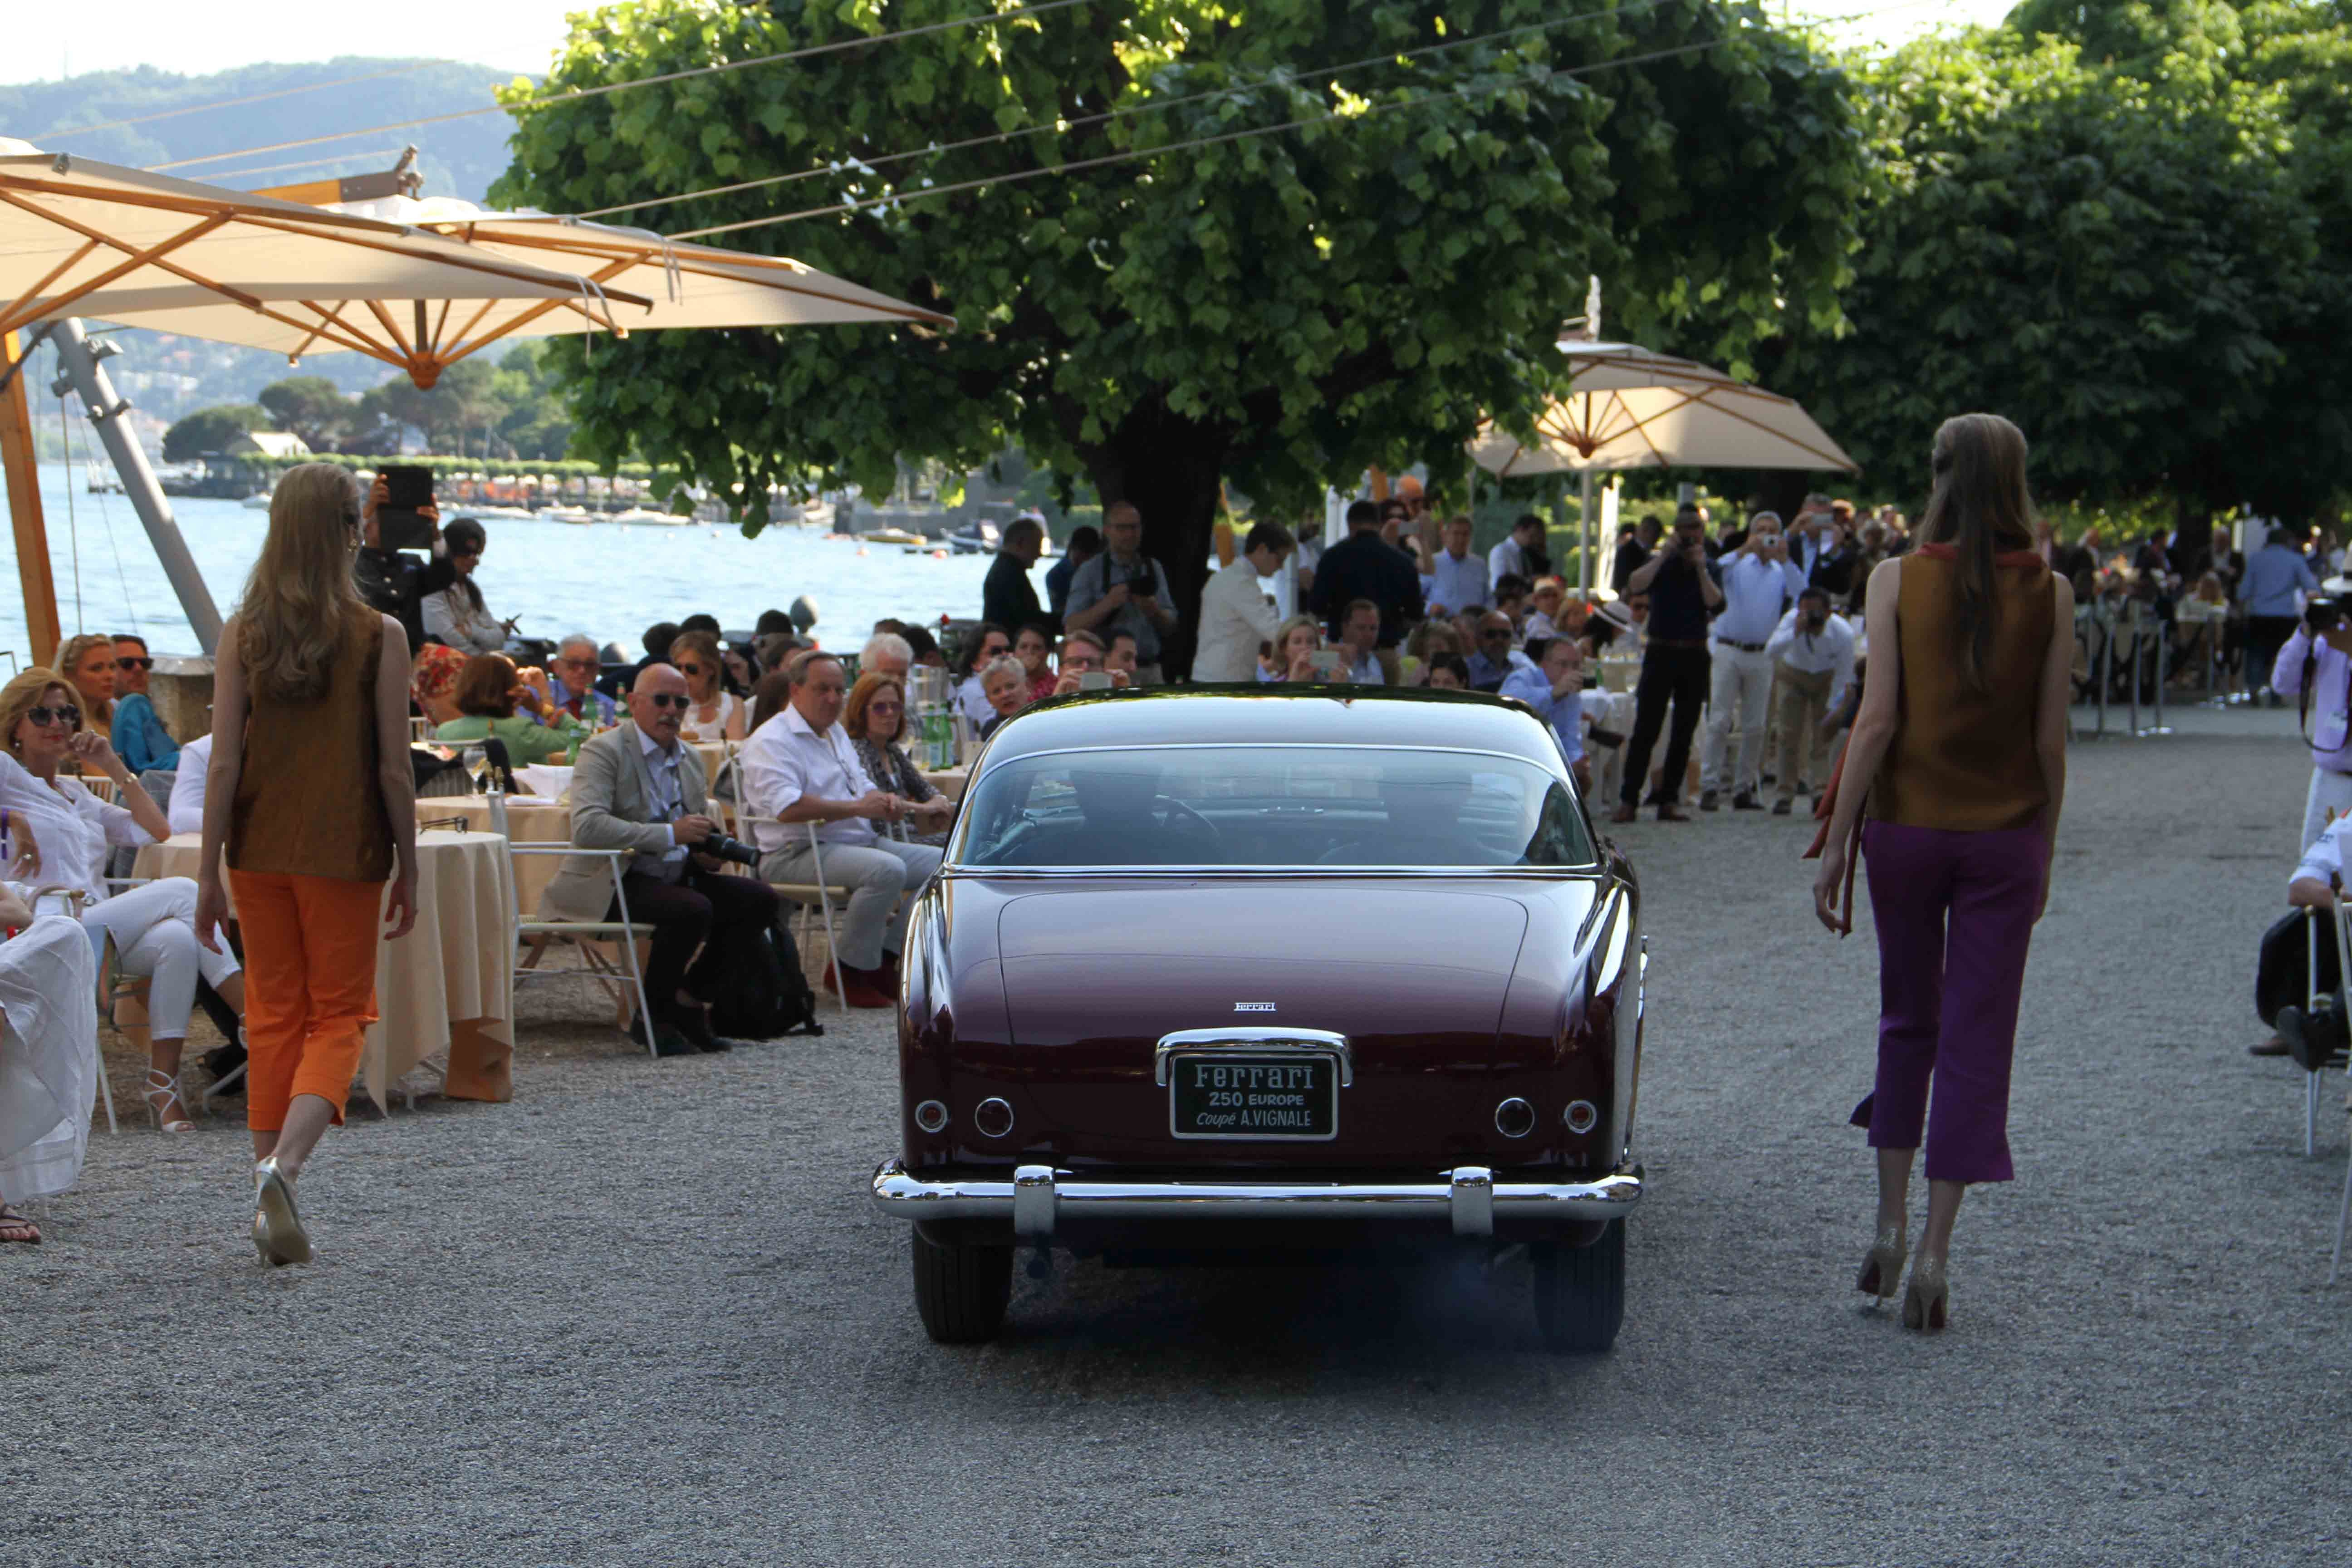 Photo Report: Watch And Car Spotting At The 2016 Concorso d'Eleganza Villa d'Este With A. Lange & Söhne Photo Report: Watch And Car Spotting At The 2016 Concorso d'Eleganza Villa d'Este With A. Lange & Söhne IMG 5581